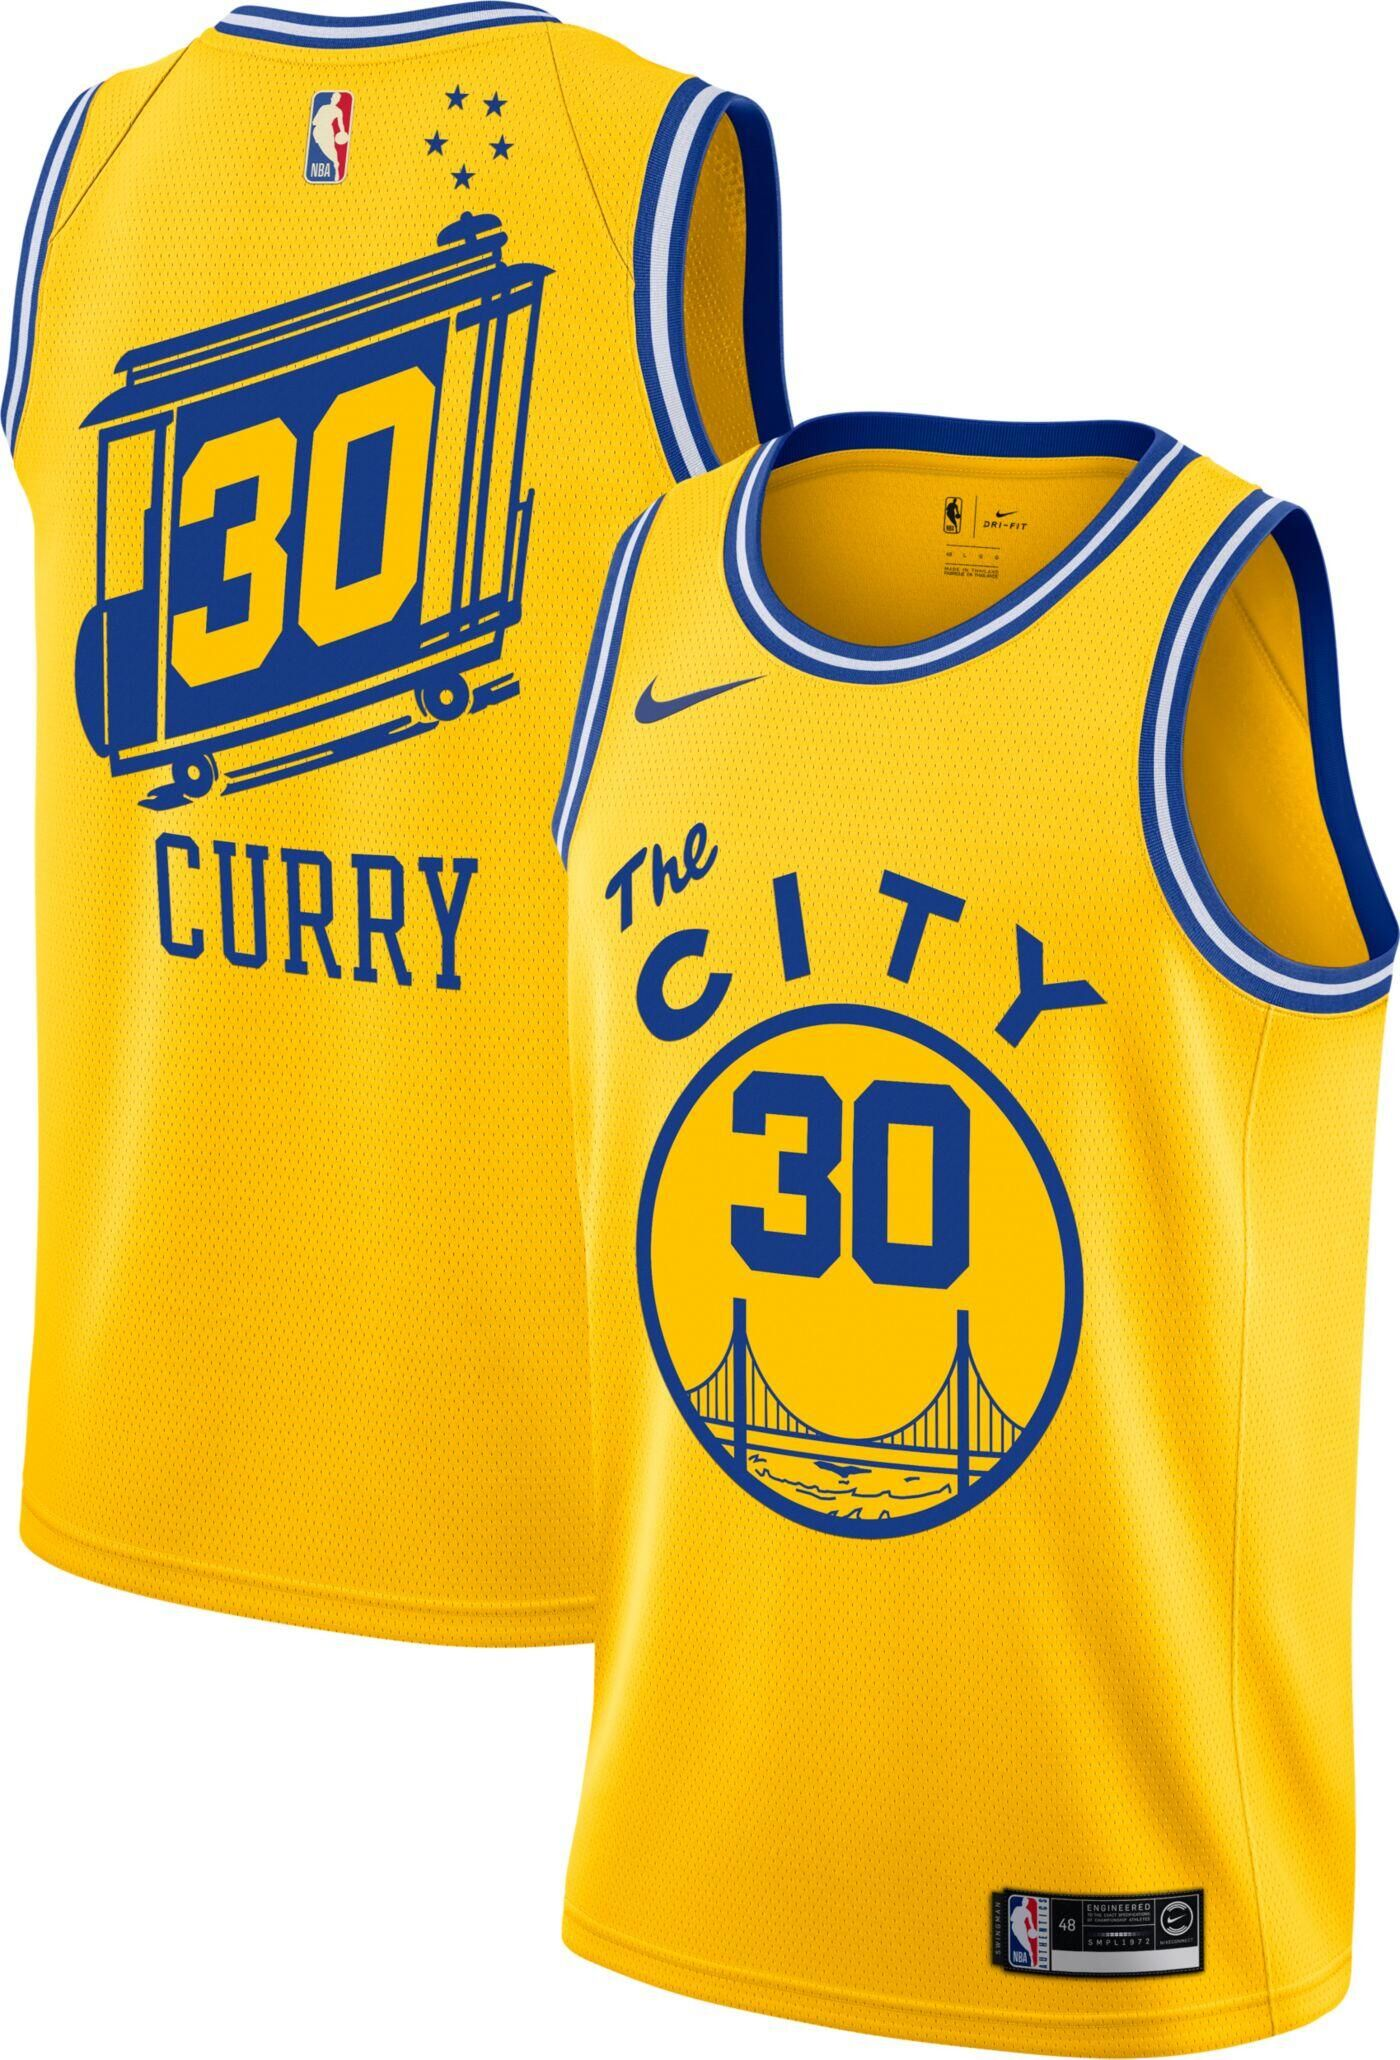 Men's Golden State Warriors #30 Stephen Curry Gold City Classic Edition Stitched NBA Jersey